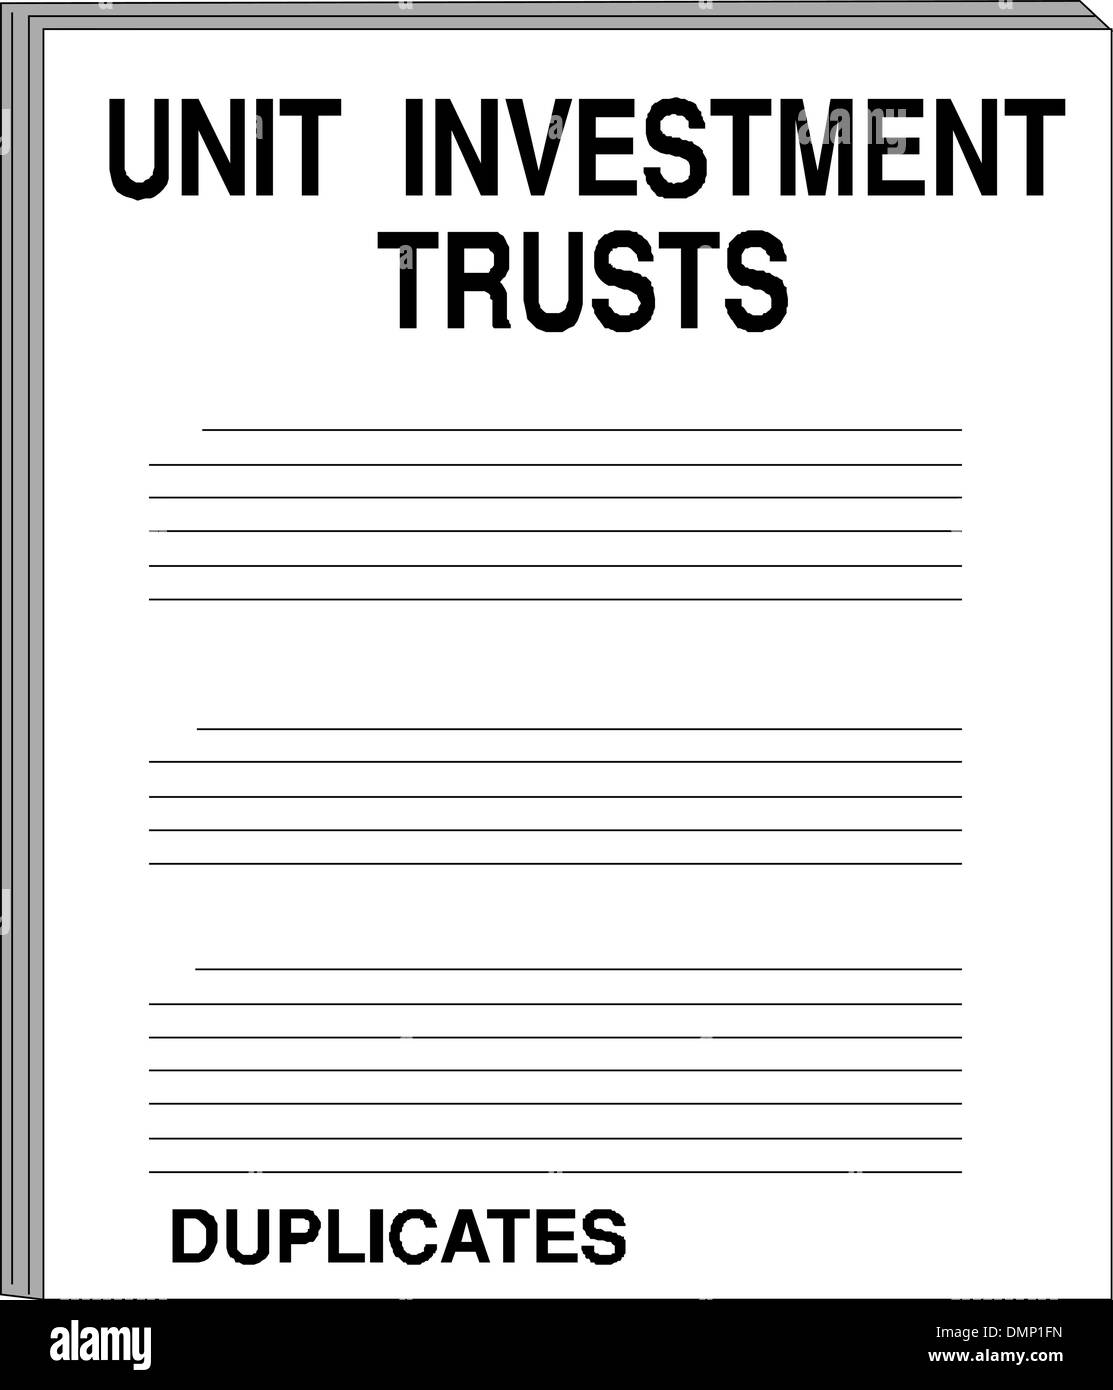 Unit investment trusts - Stock Vector